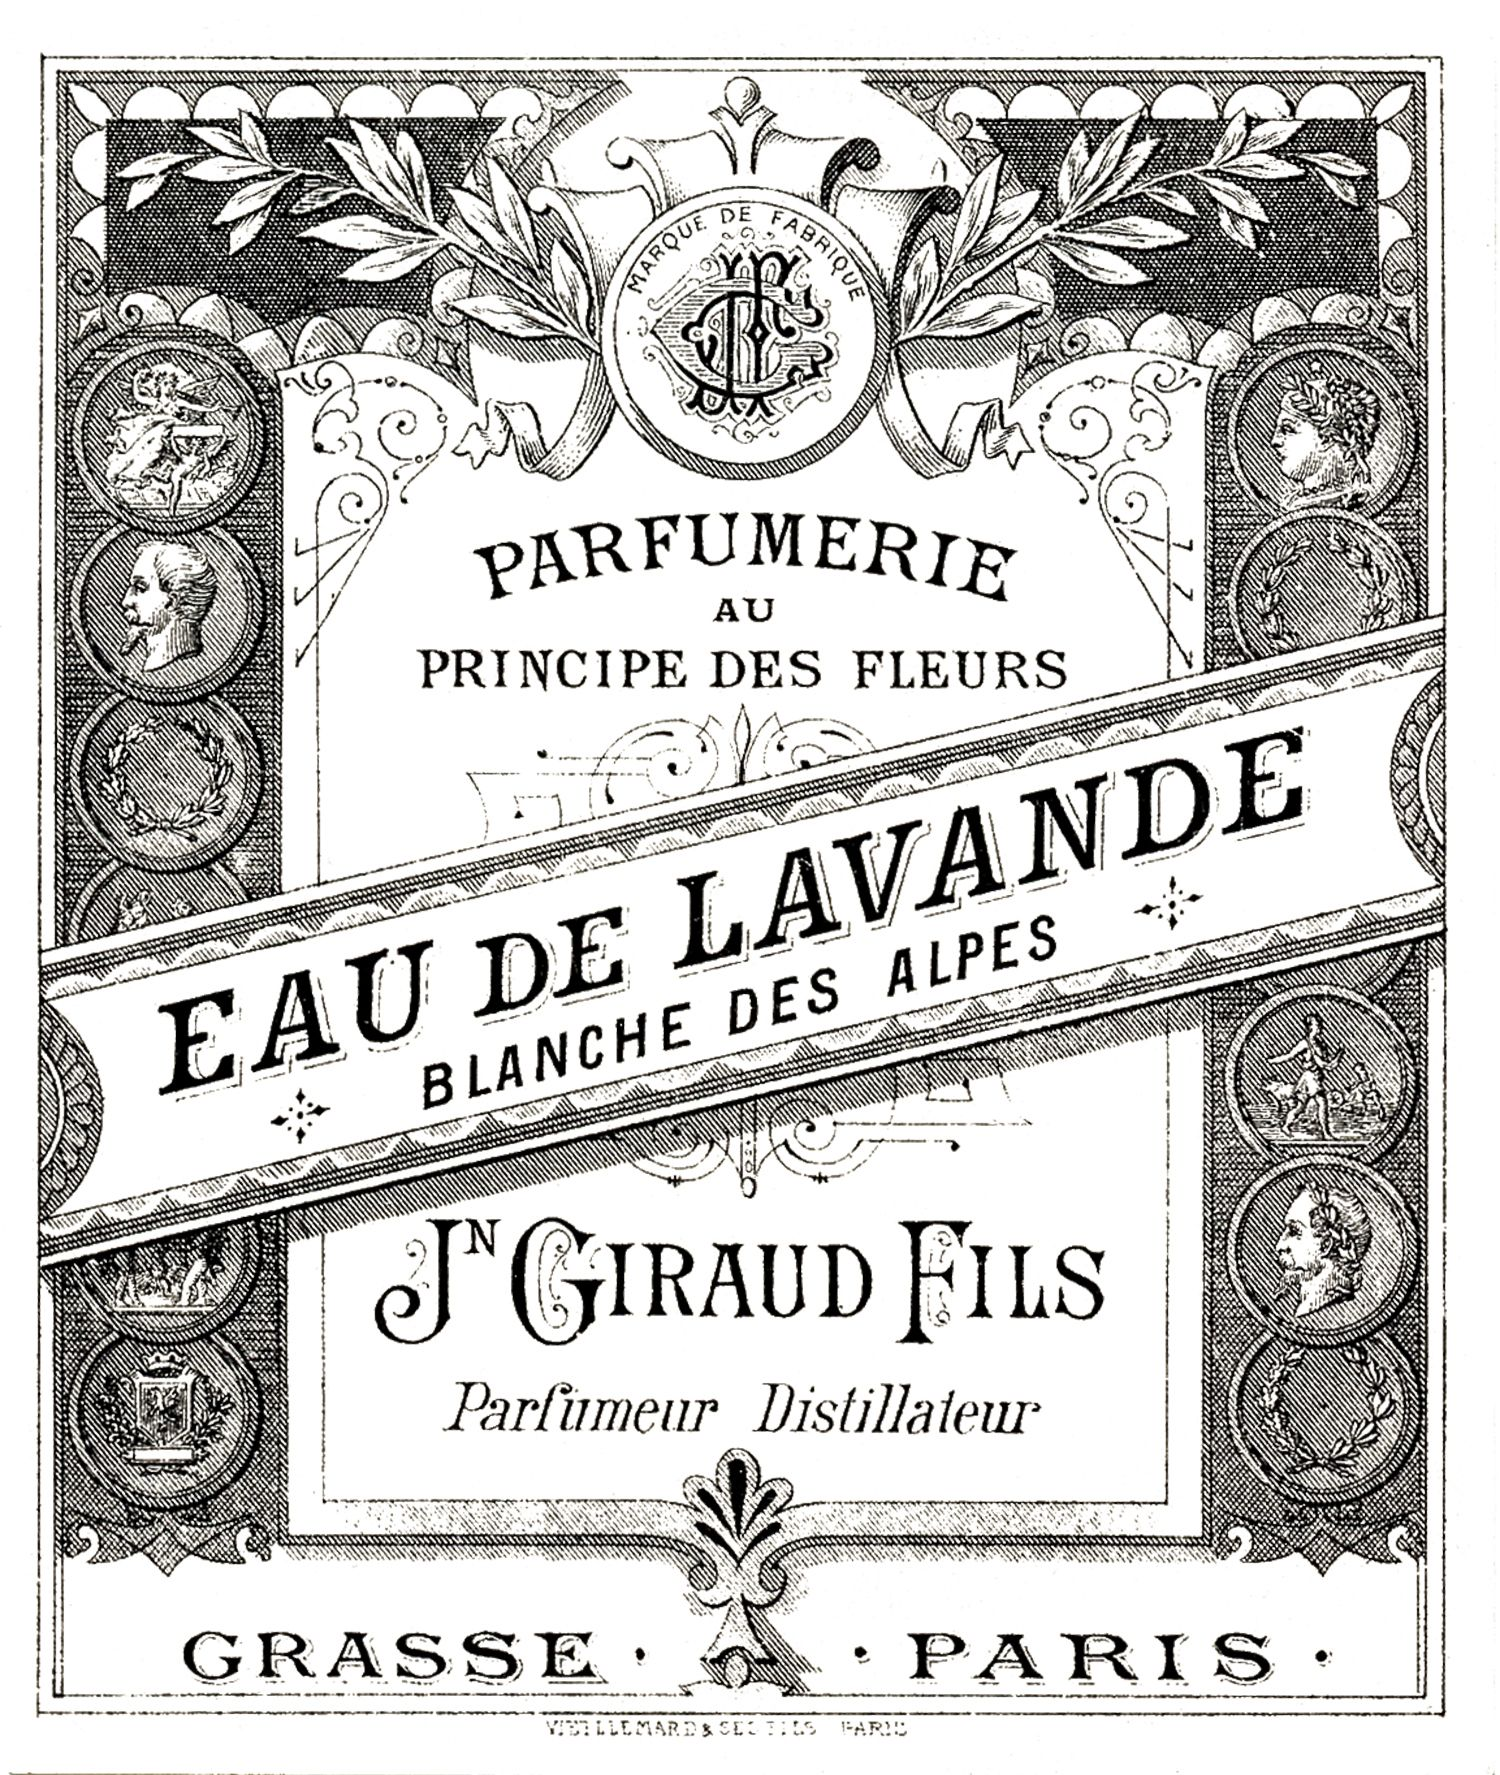 Antique Perfume Label Image Graphics fairy and Graphics